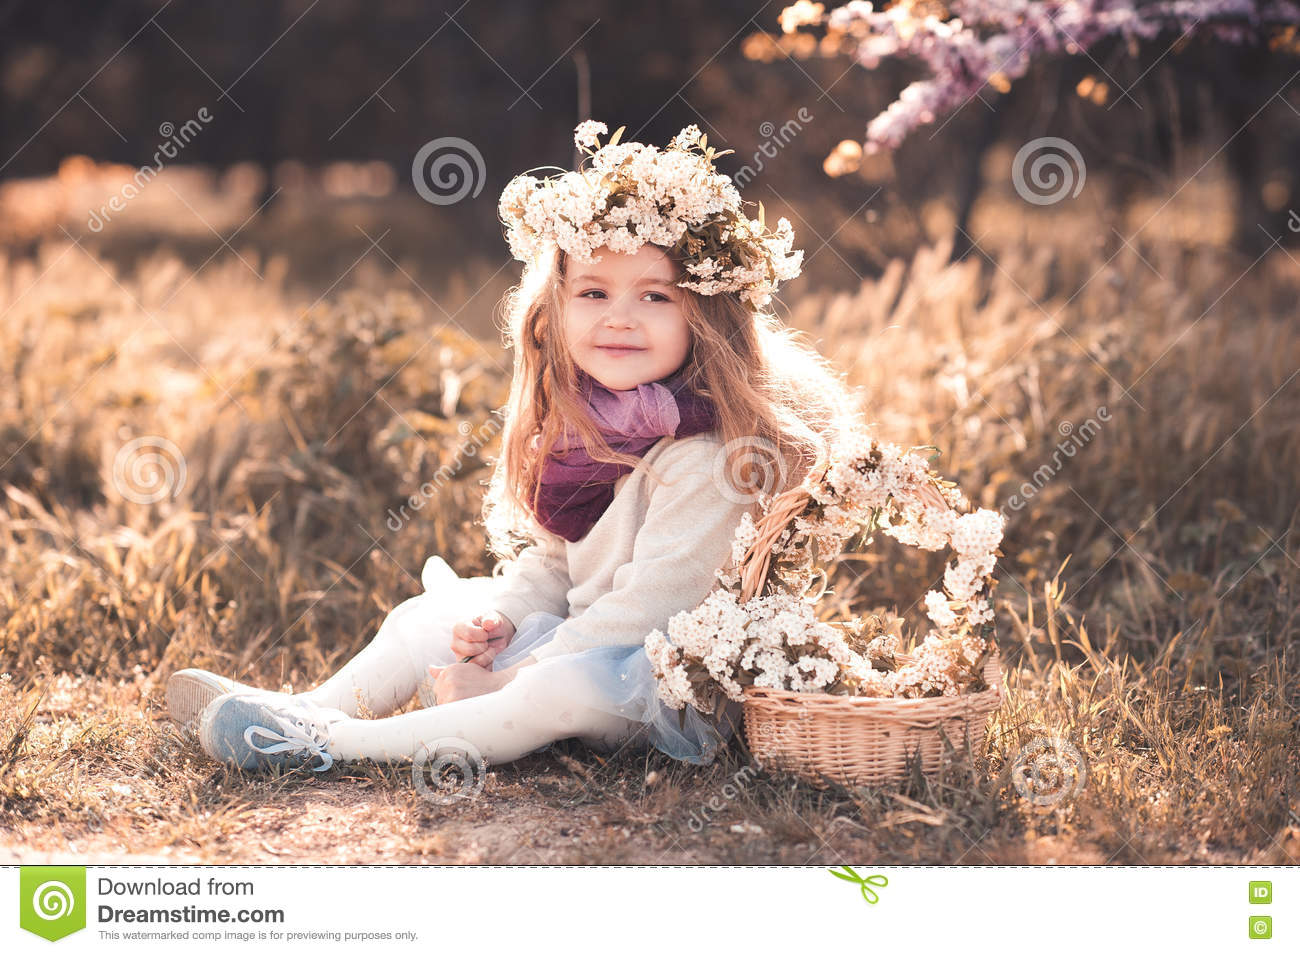 cute baby girl with flowers outdoors stock image - image of girl